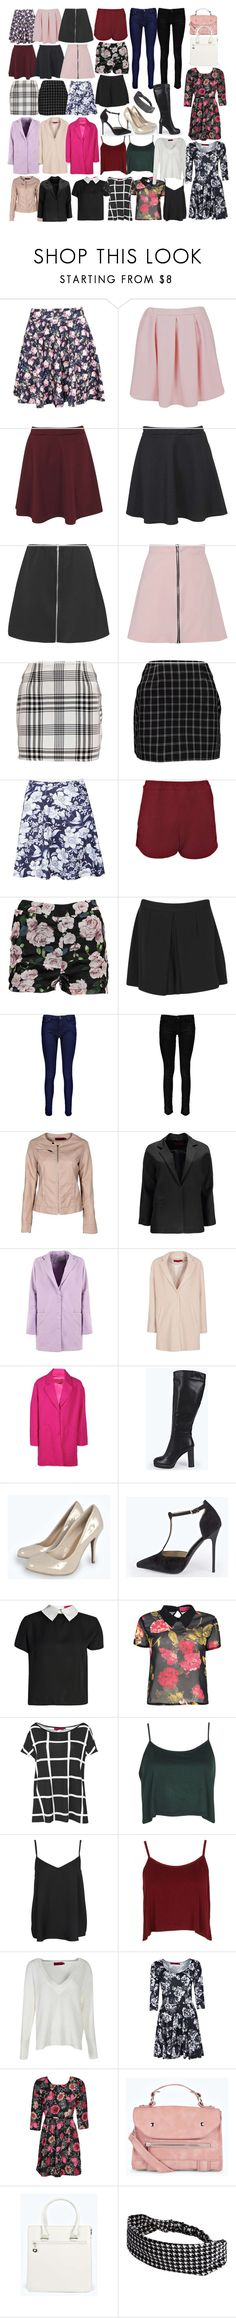 Lydia Inspired Boohoo Potentials by veterization on Polyvore featuring Boohoo